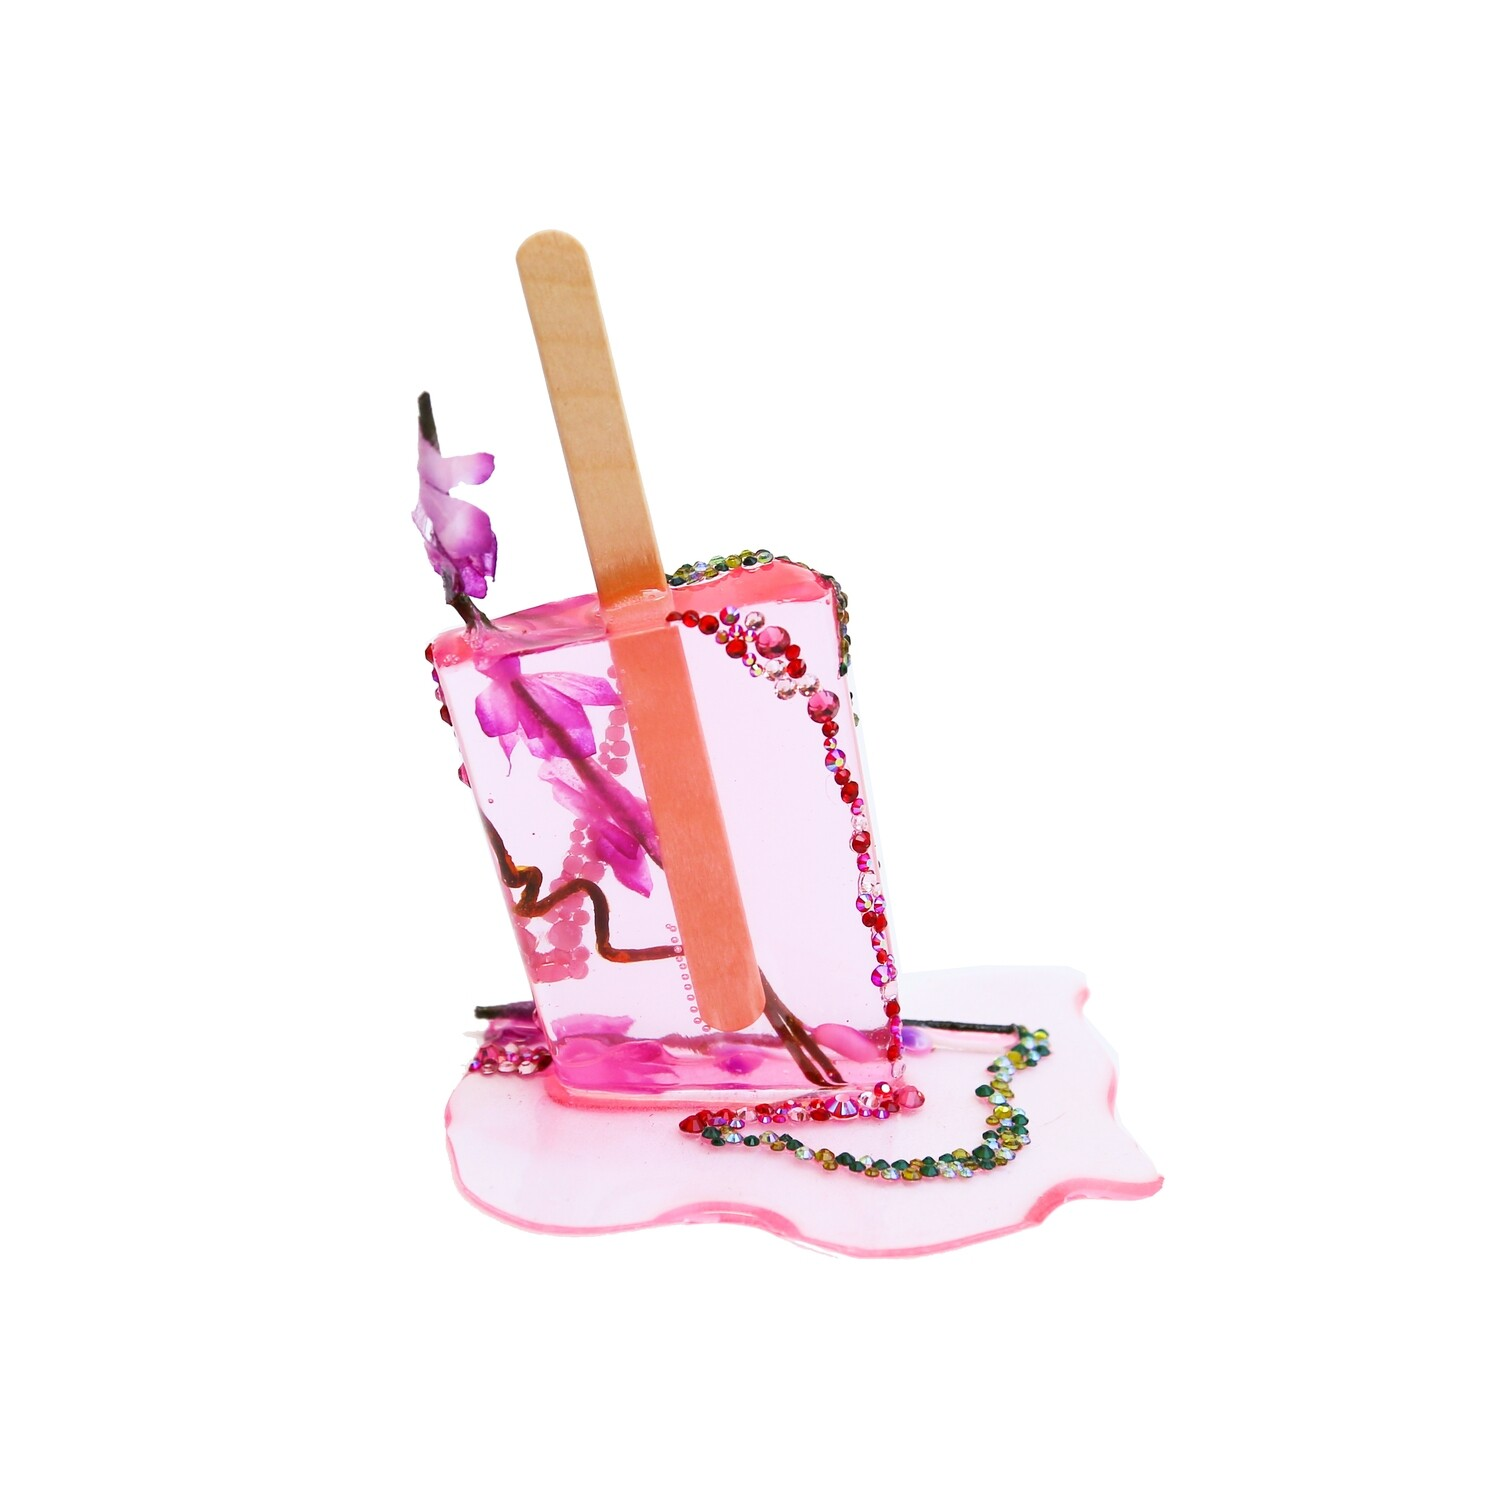 Floral Popsicle - Limited Edition 15/20, 2020